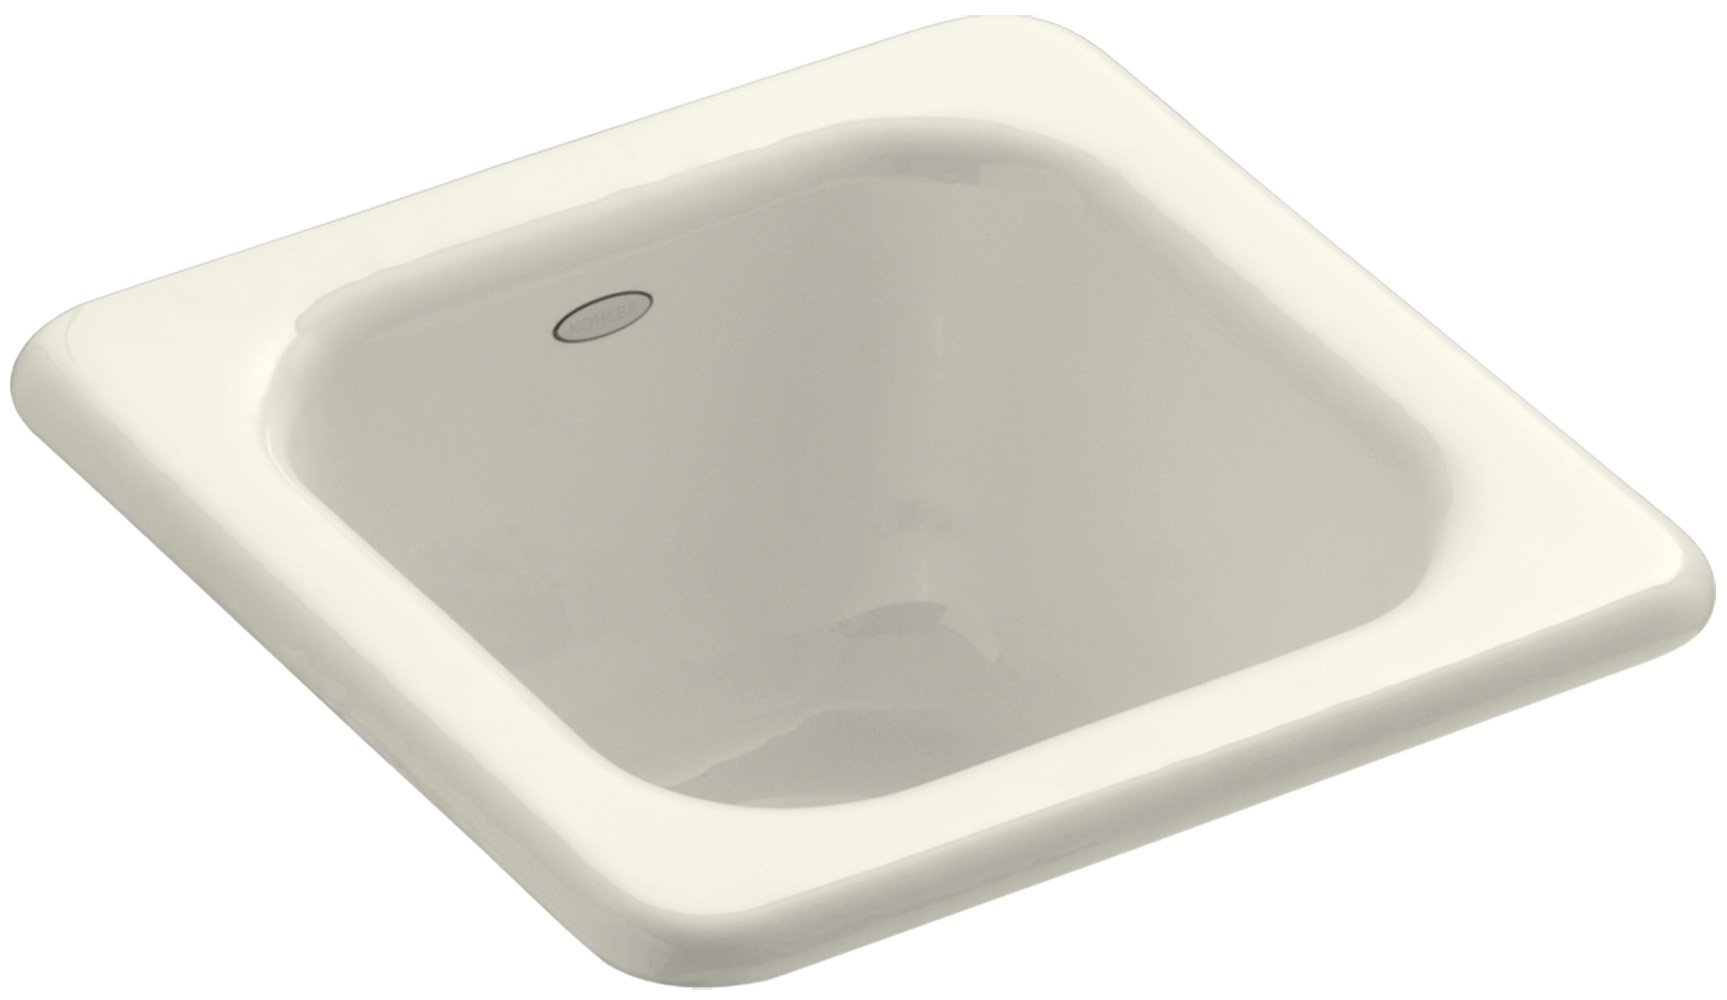 KOHLER K-6552-96 Addison Self-Rimming Entertainment Sink, Biscuit